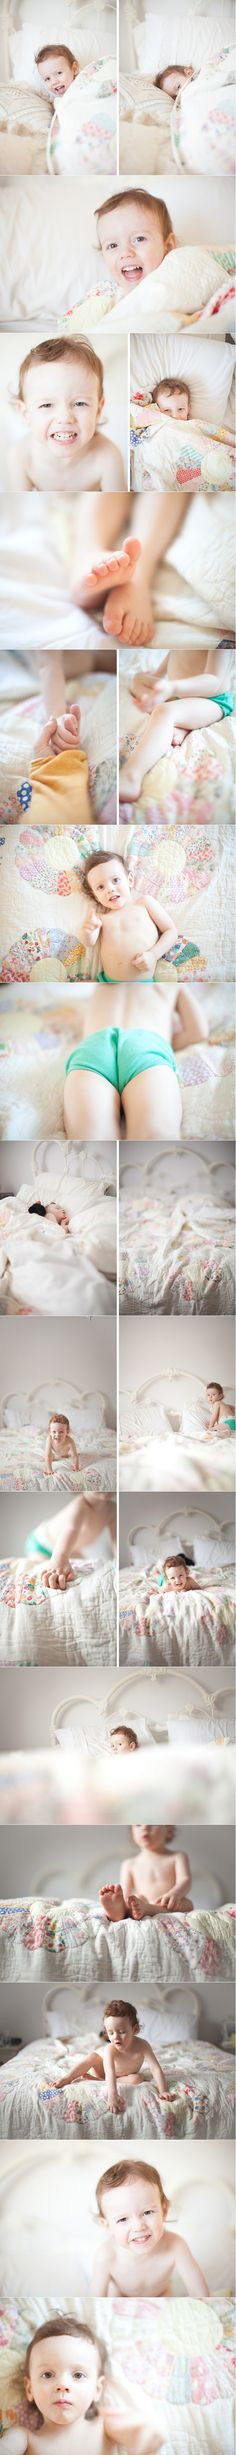 Ideas for birthday photo shoot...like a newborn shoot, close ups of body parts, but how they've grown